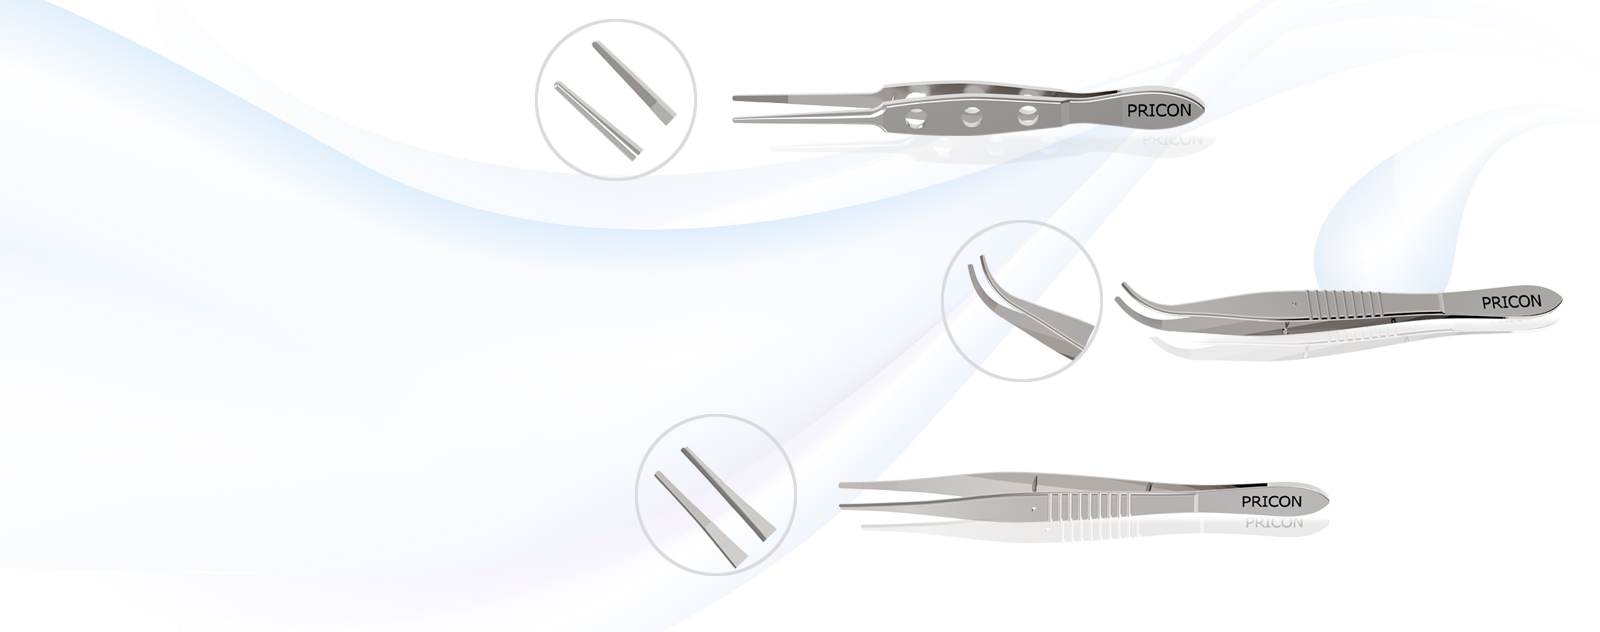 Pricon - Surgical Instruments